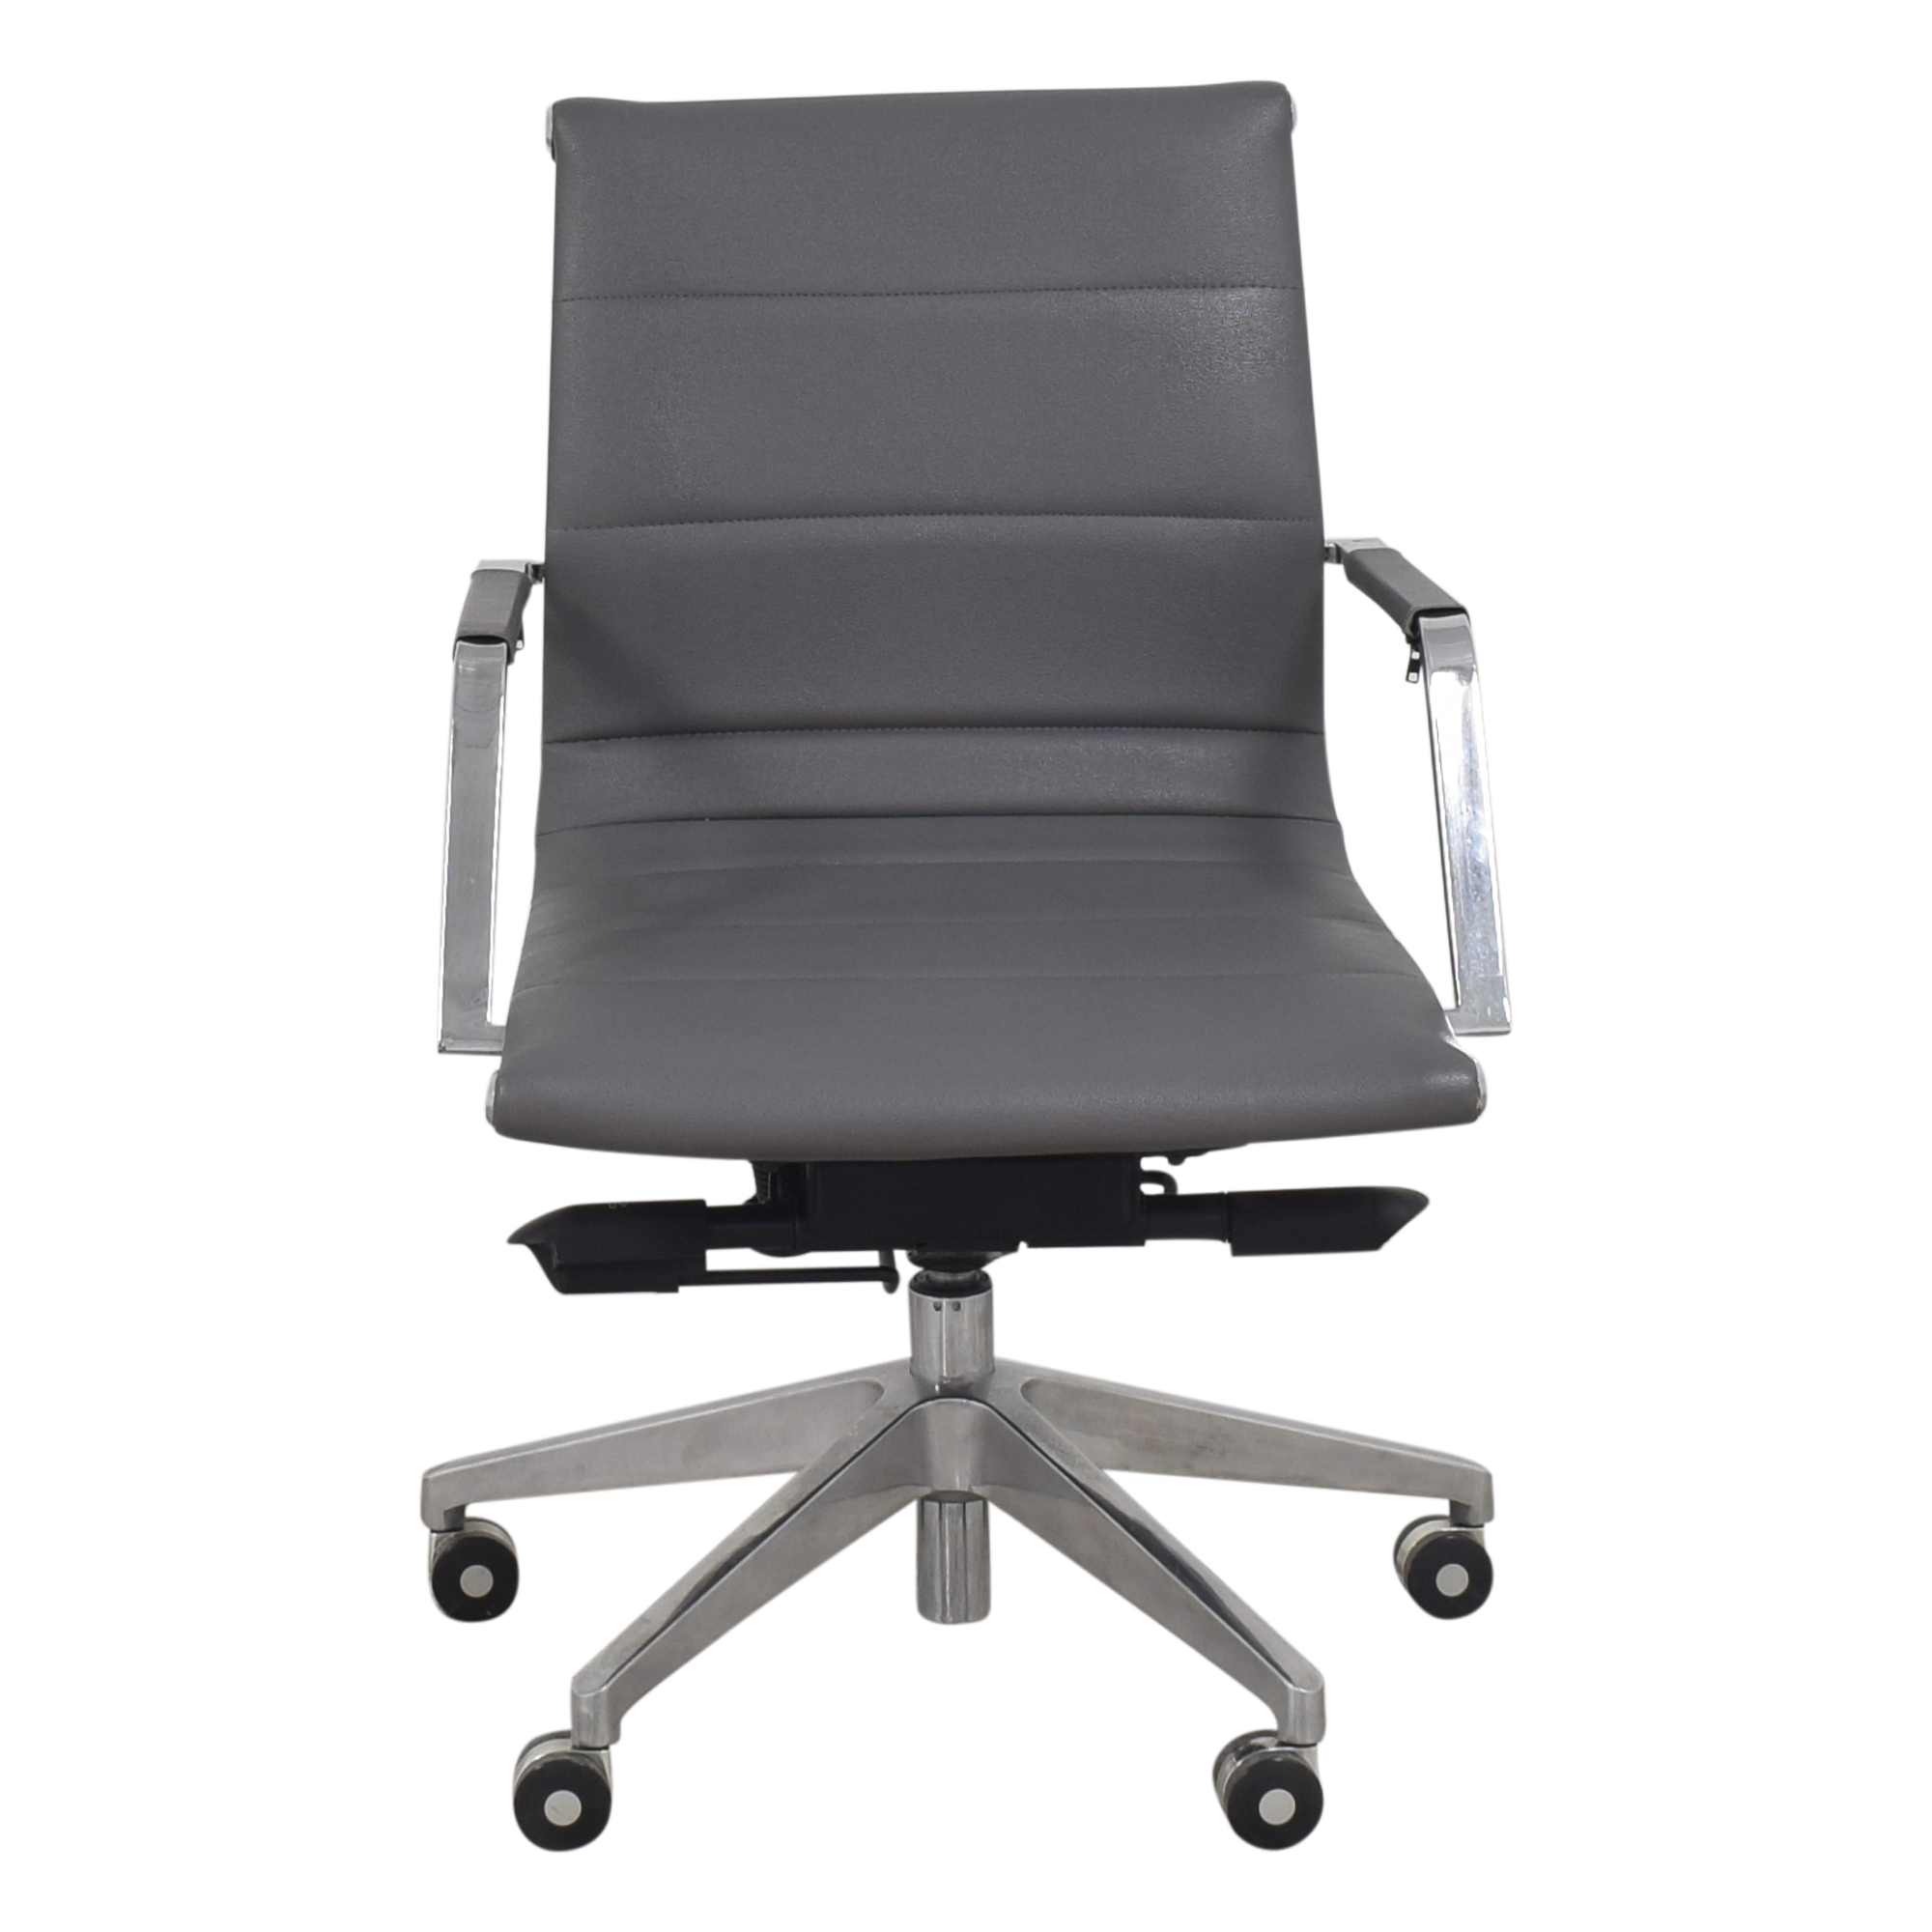 buy Jesper Office Adjustable Desk Chair Jesper Office Chairs